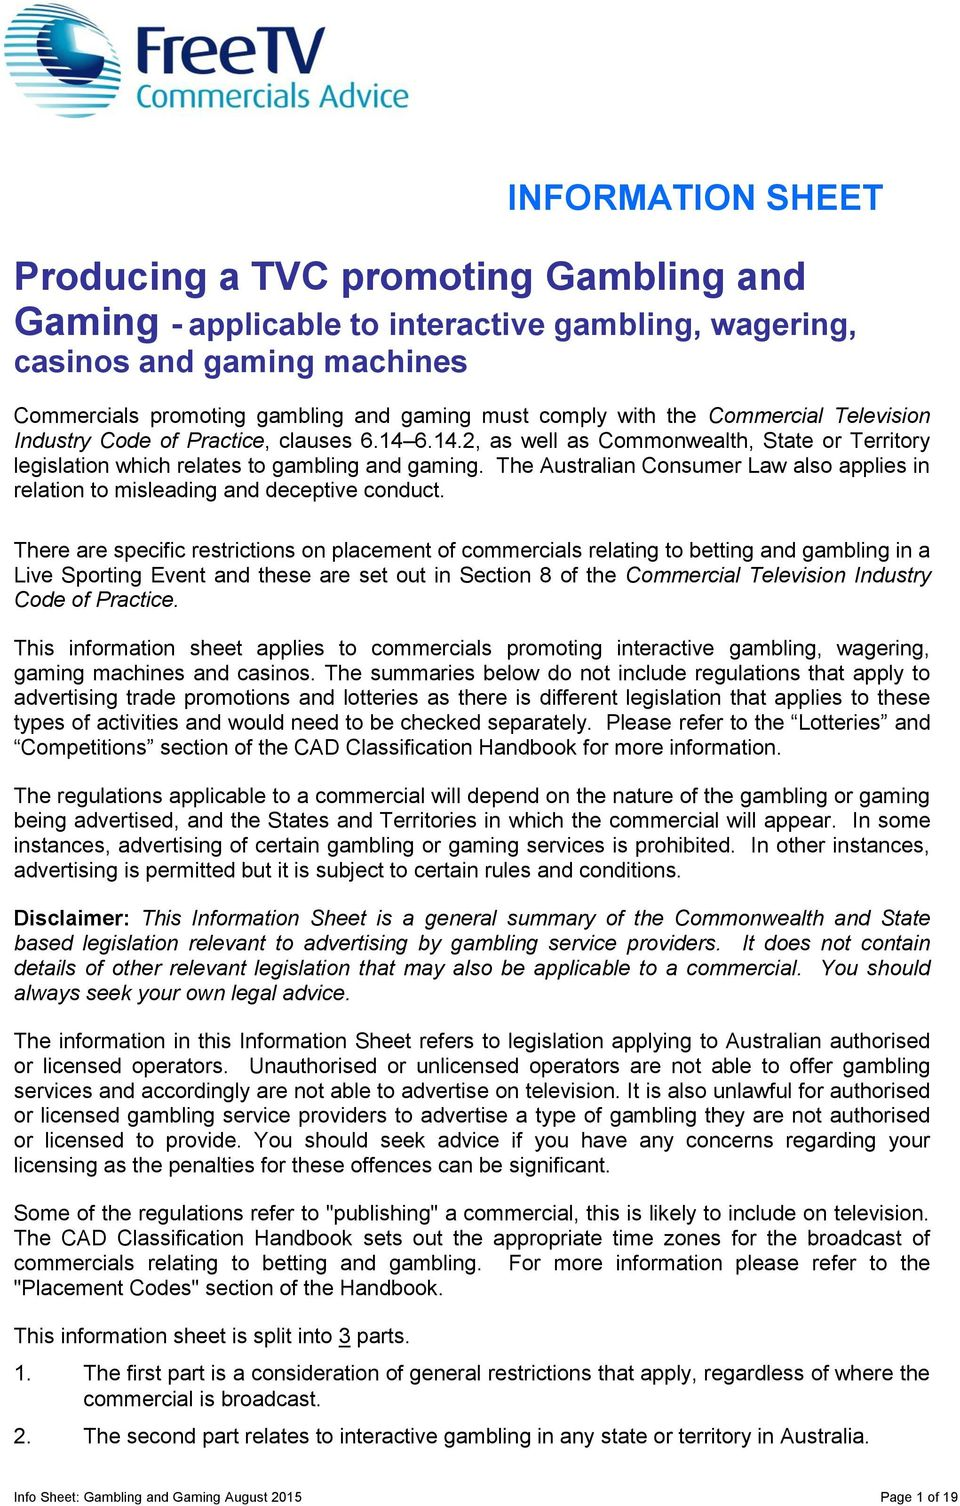 Producing a TVC promoting Gambling and Gaming - applicable to